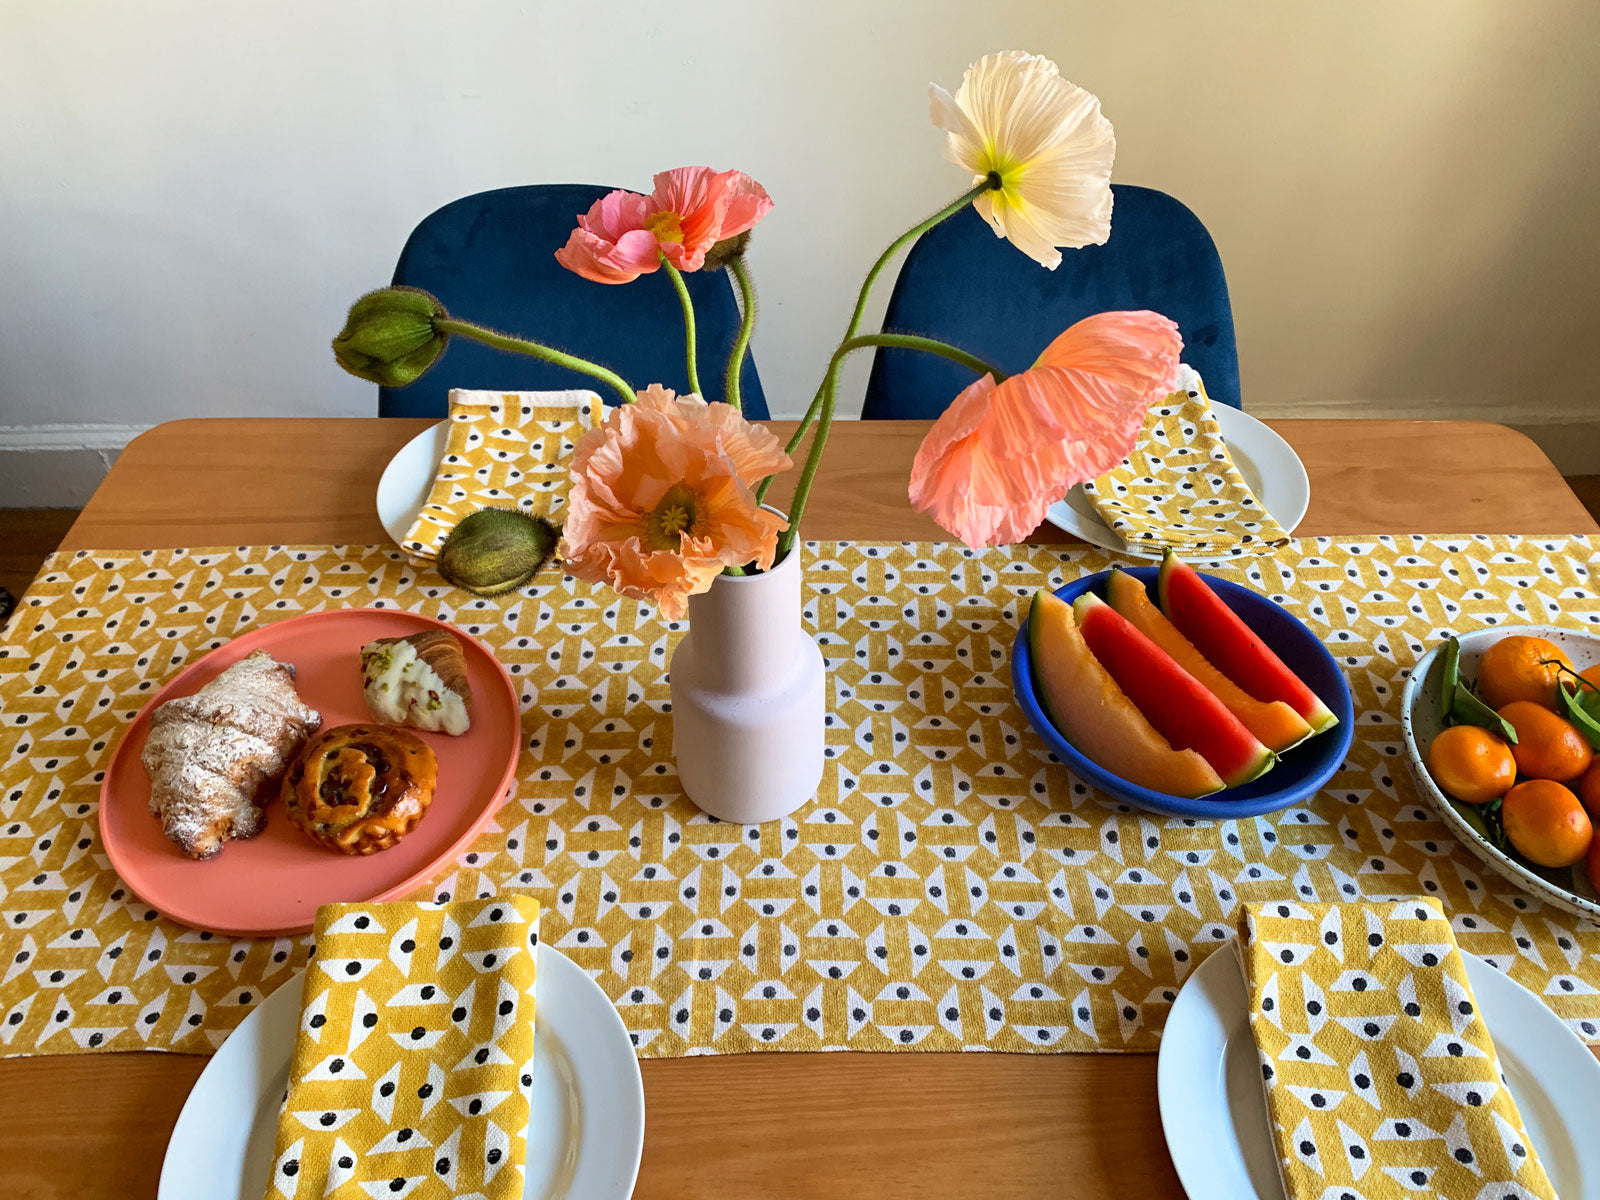 Yellow and black geometric patterned table runner and napkins by SUNDAY/MONDAY.  Hand block printed in India. Perfect table linens for spring and summer in a cheery chic yellow.